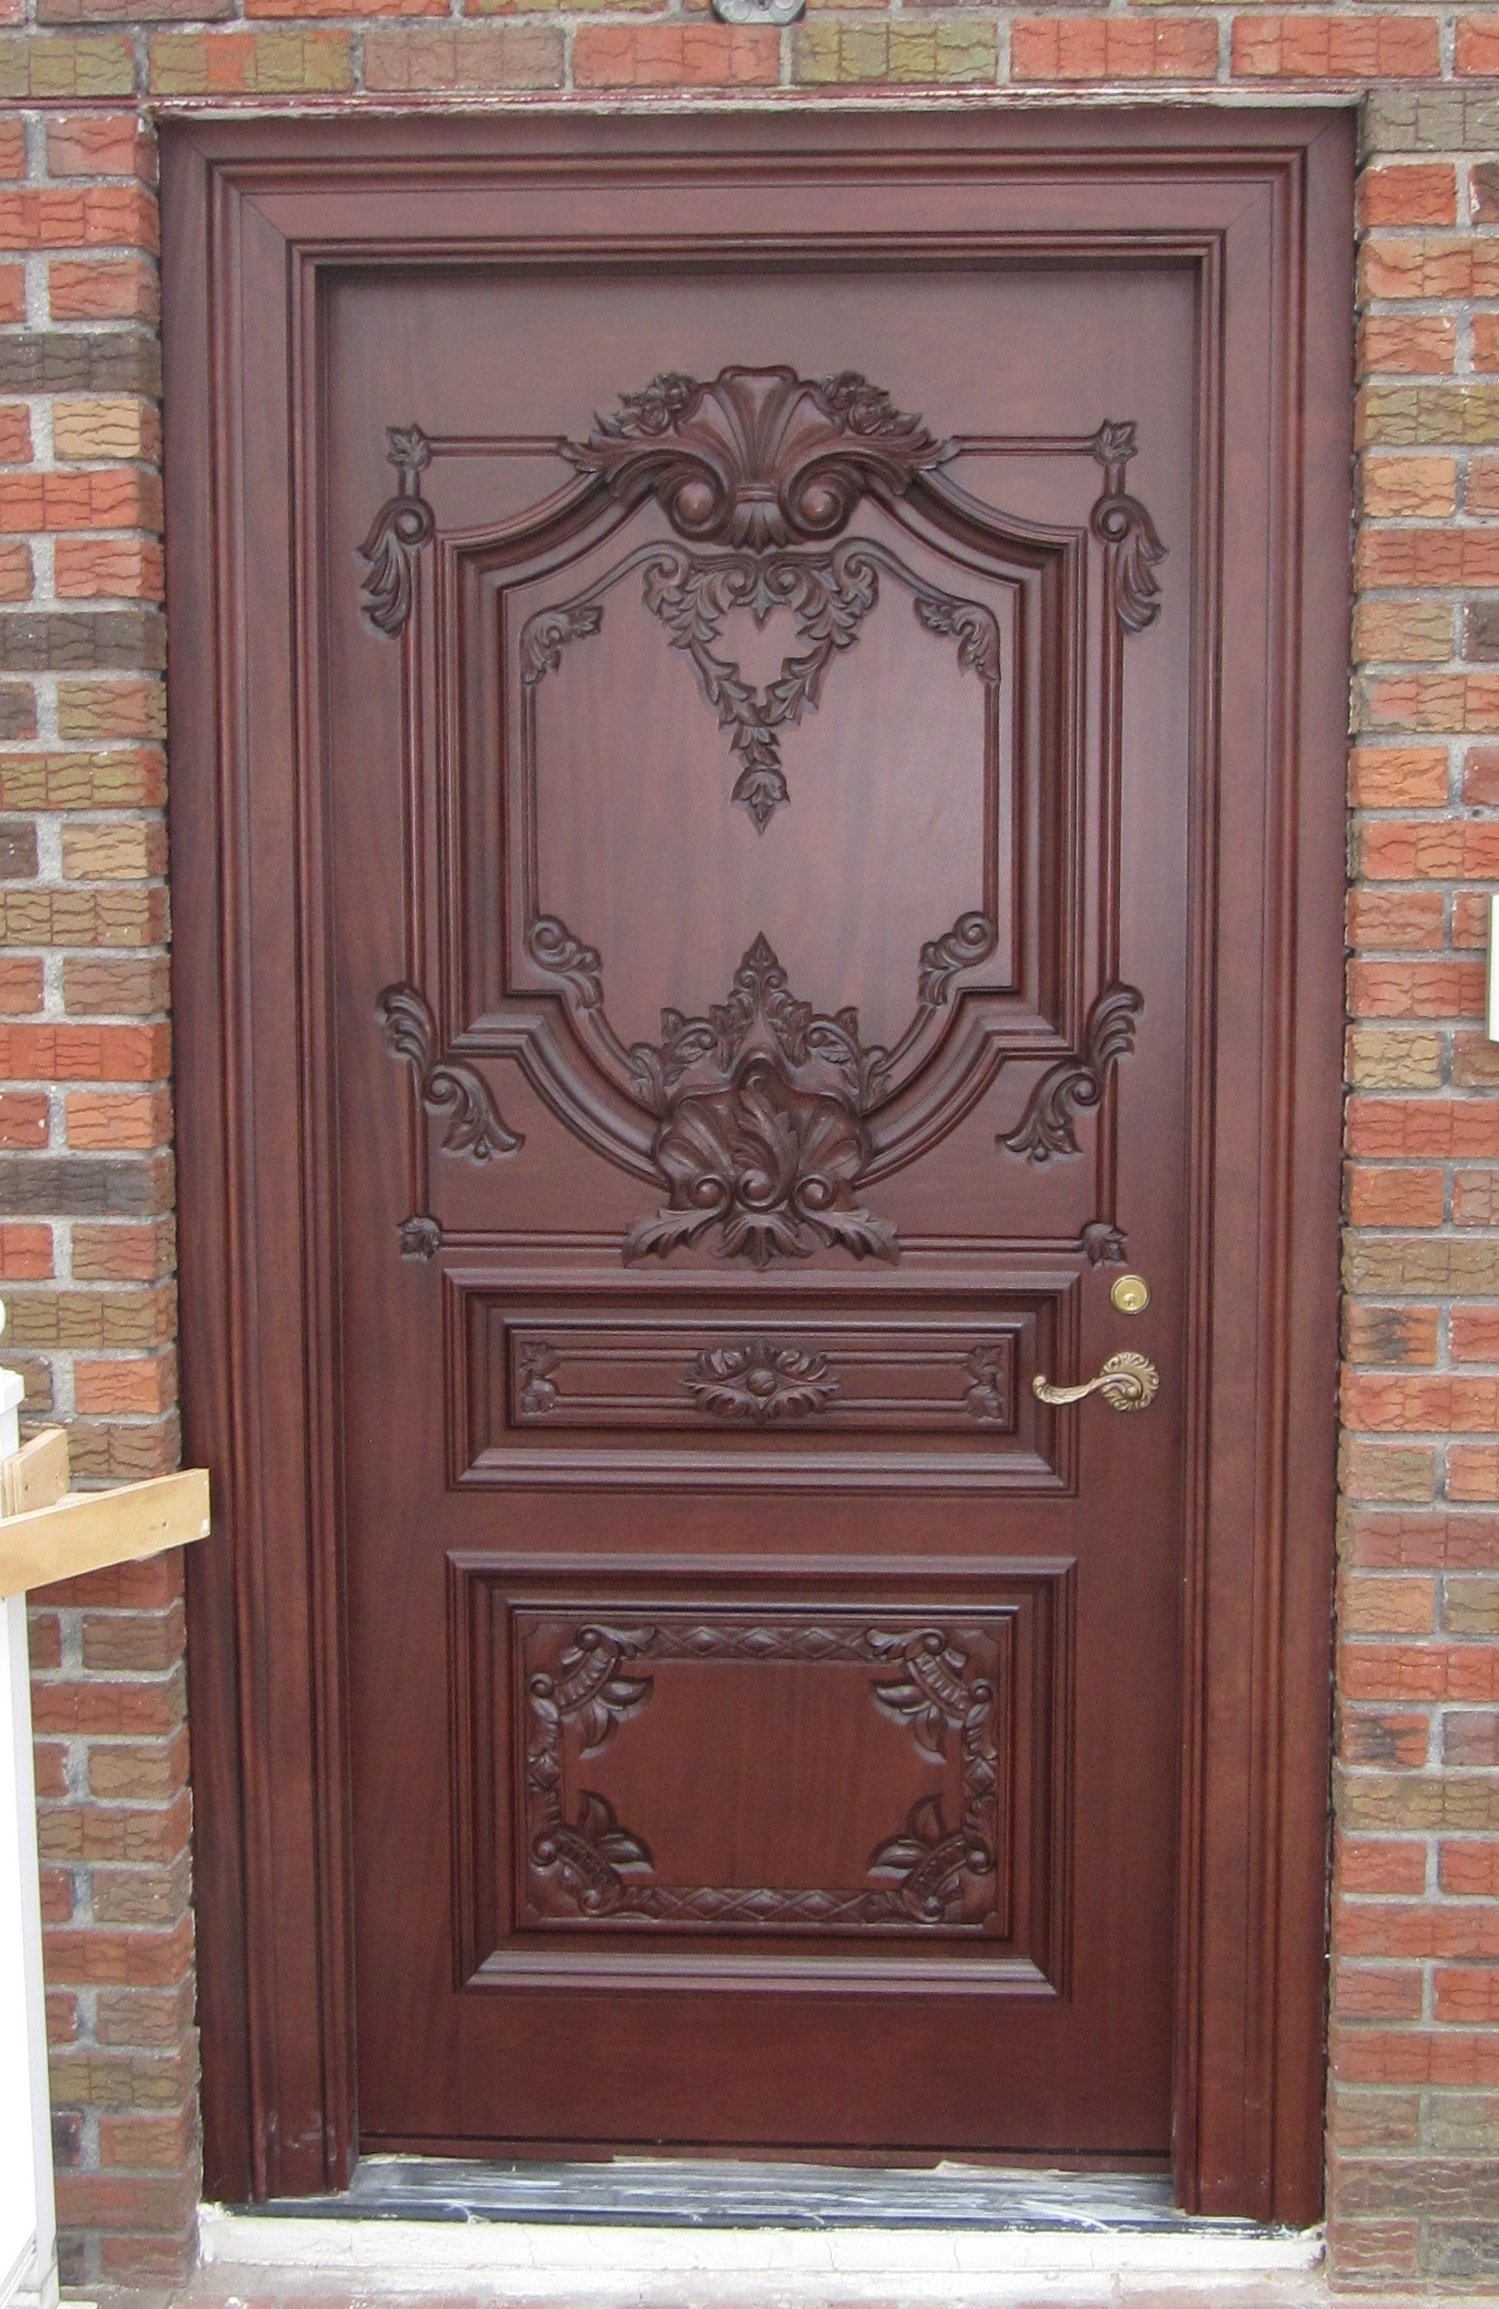 Grand doors makes grand entrance in new york new jersey for Door design latest 2015